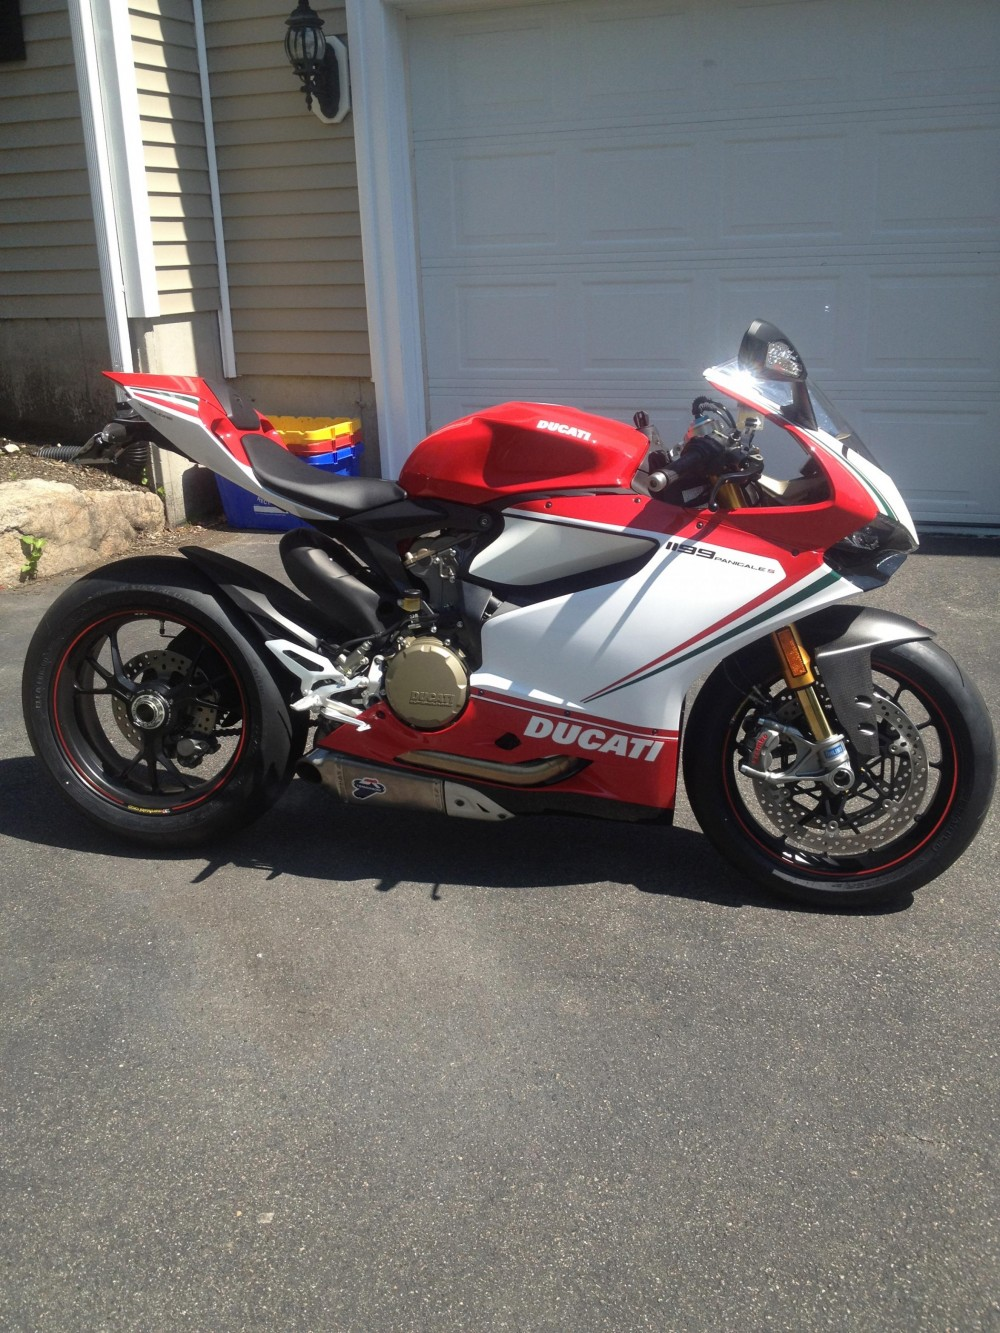 Ducati 1199 S Panigale Tricolore Co may sieu long moi con tim - 9